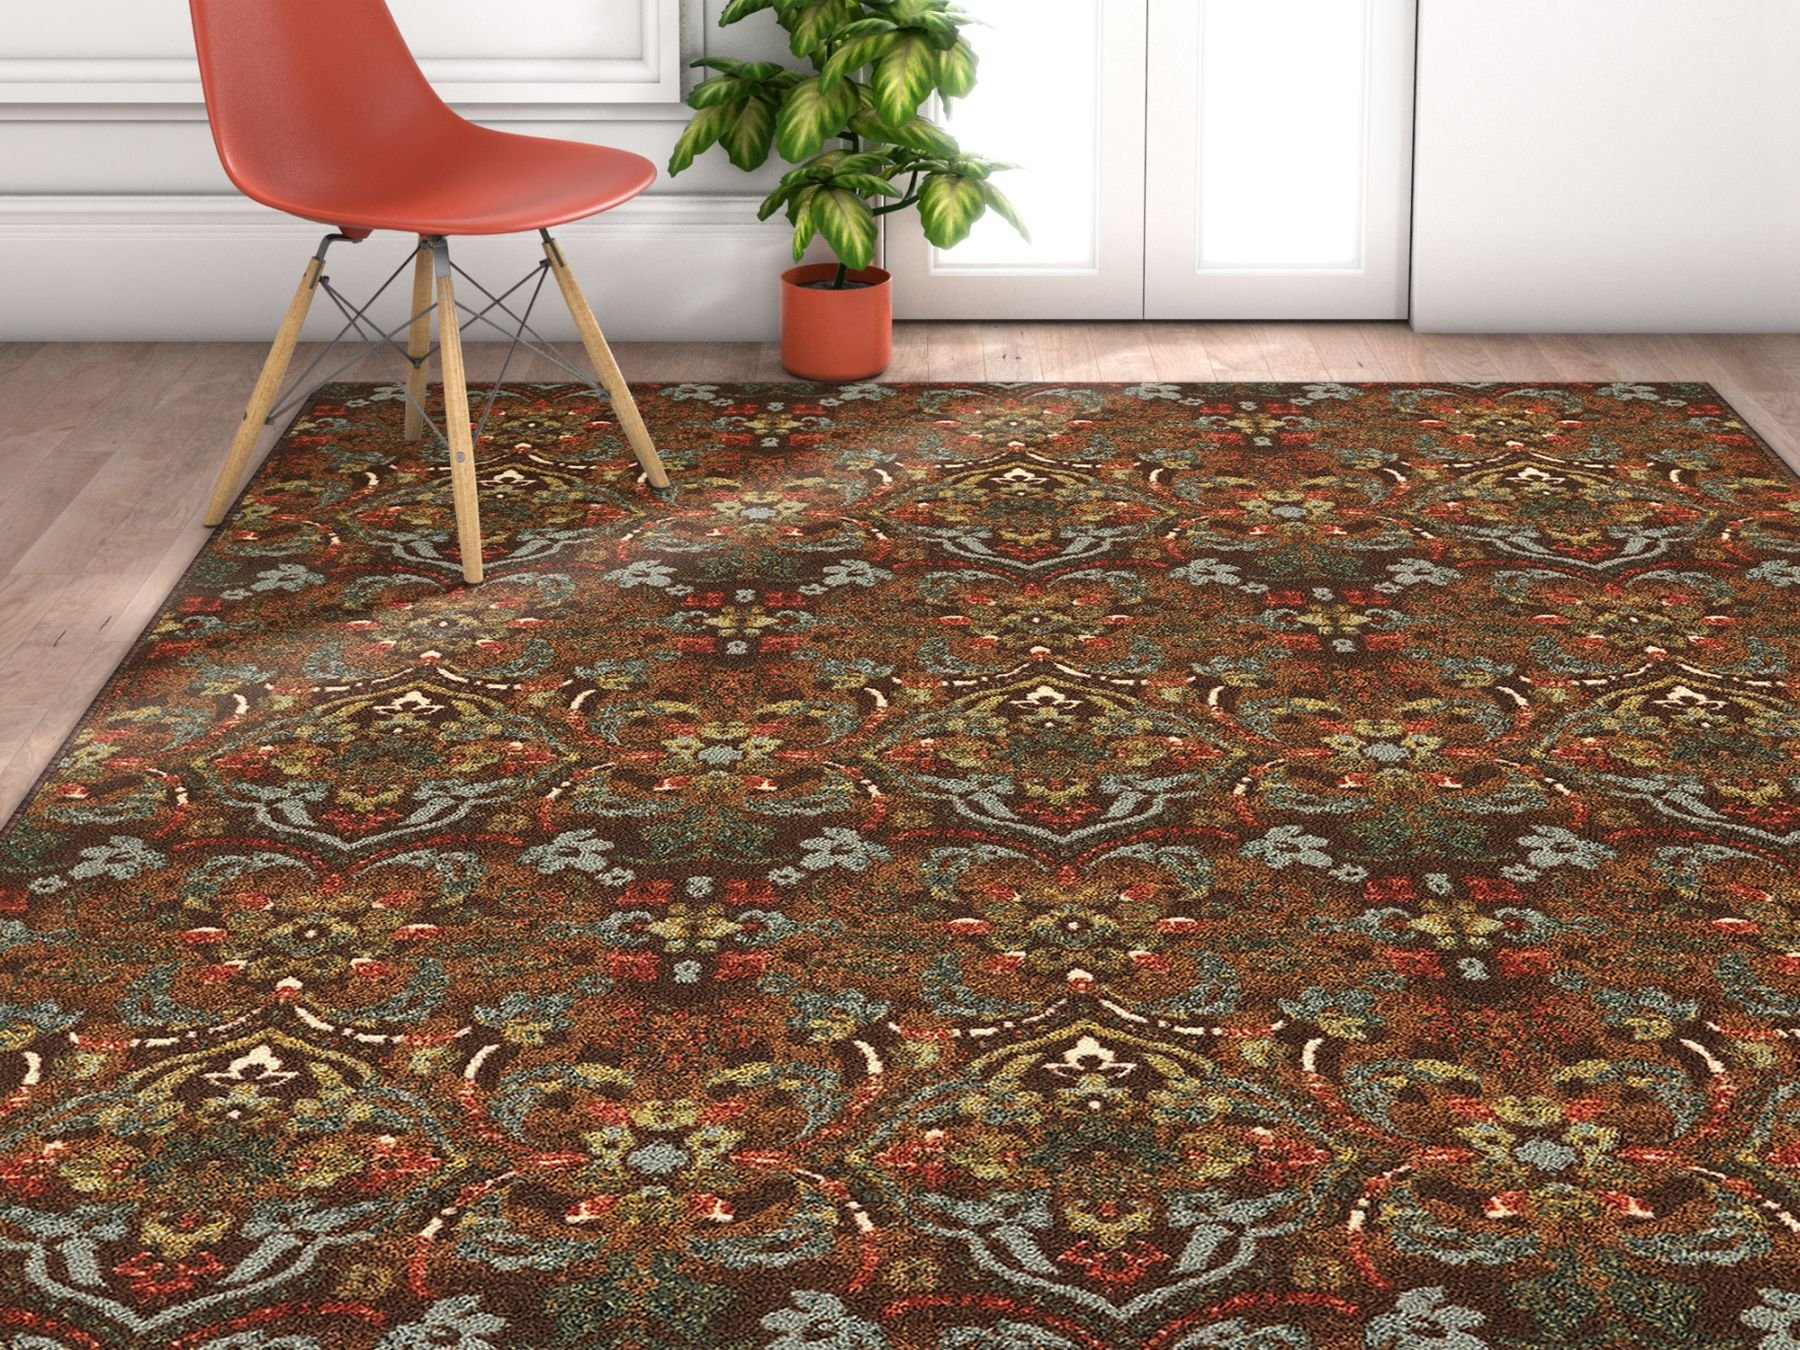 Non-Skid / Slip Rubber Back Antibacterial 8x11 (7'10''x9'10'') Traditional Persian Rug Brown Mutli Color Thin Low Pile Machine Washable Indoor Outdoor Area Rug